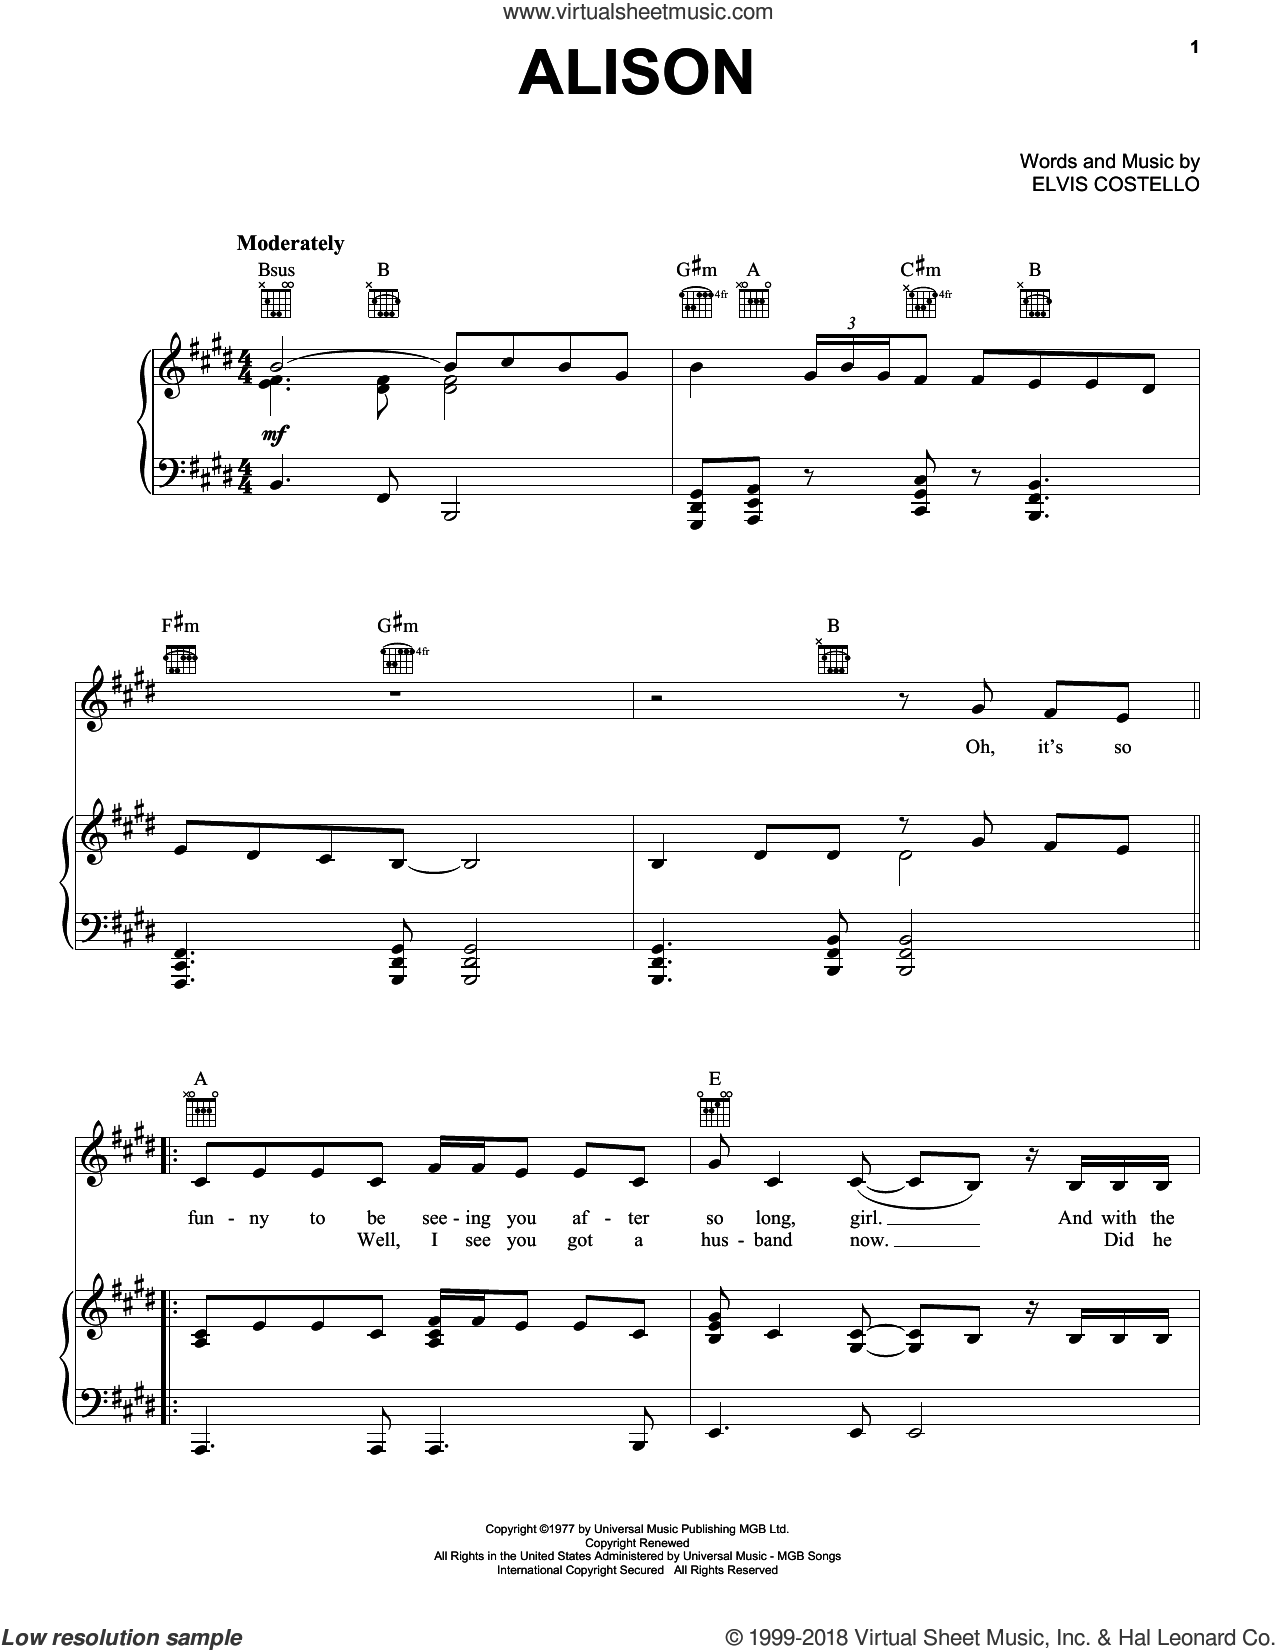 Alison sheet music for voice, piano or guitar by Elvis Costello, intermediate skill level